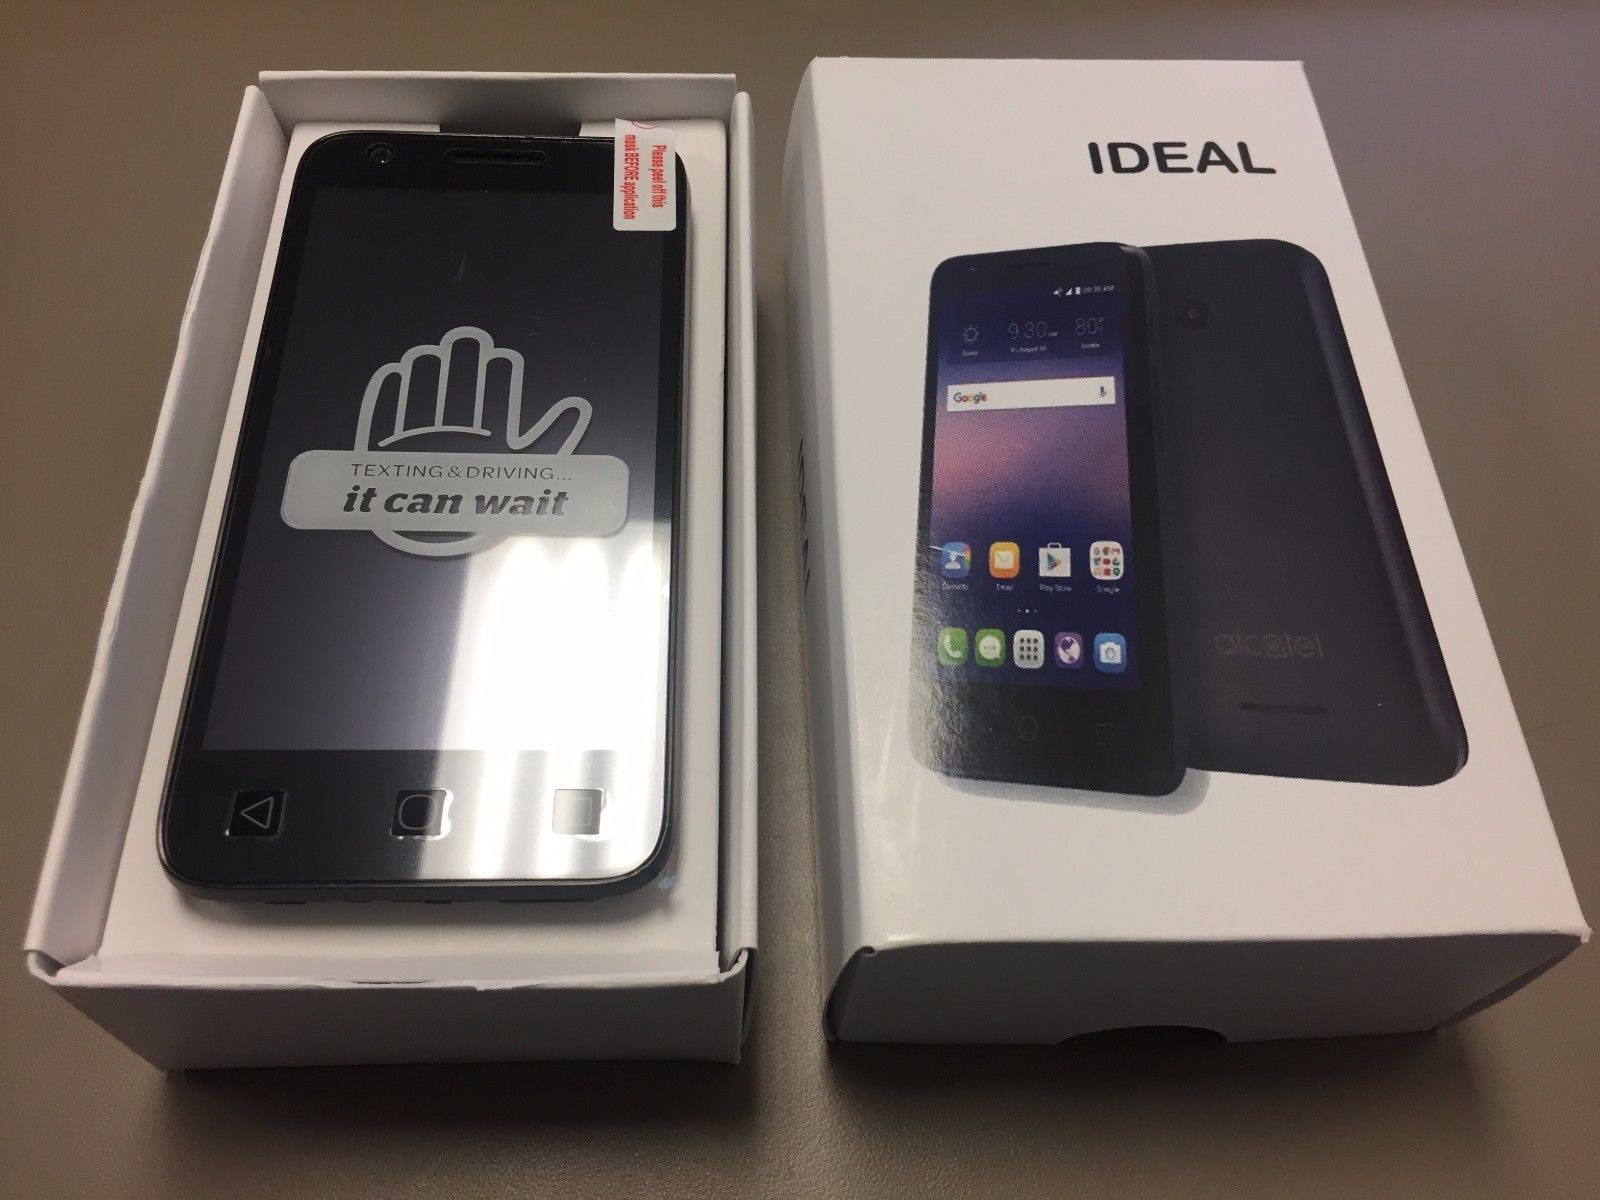 New Alcatel Ideal 4060A GSM UNLOCKED Gray 4G LTE 8GB Android